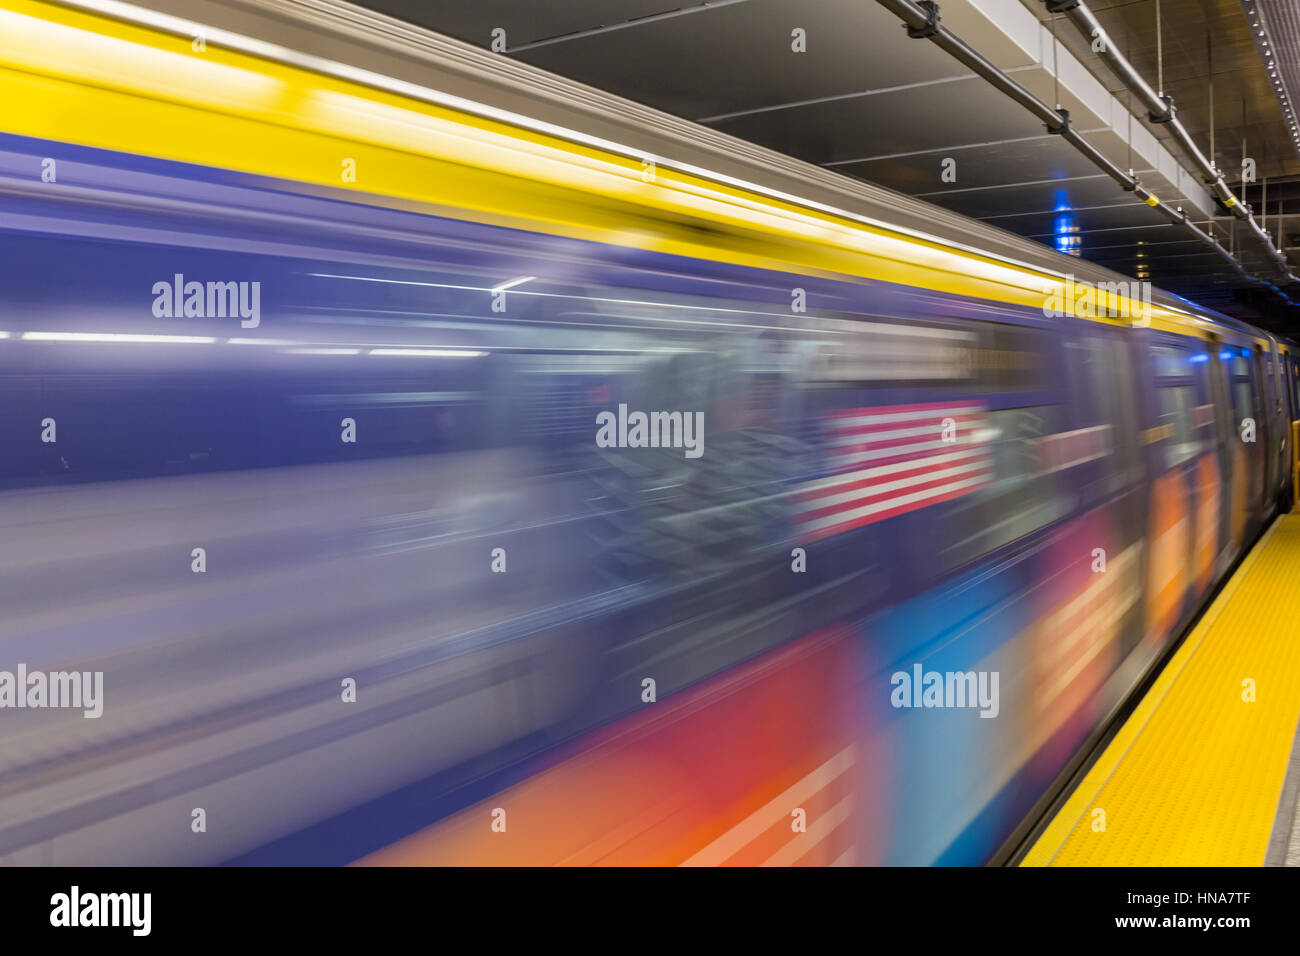 February 5, 2017: A colorful Second Avenue train arriving at the new 86th Street Q Train platform, New York. - Stock Image